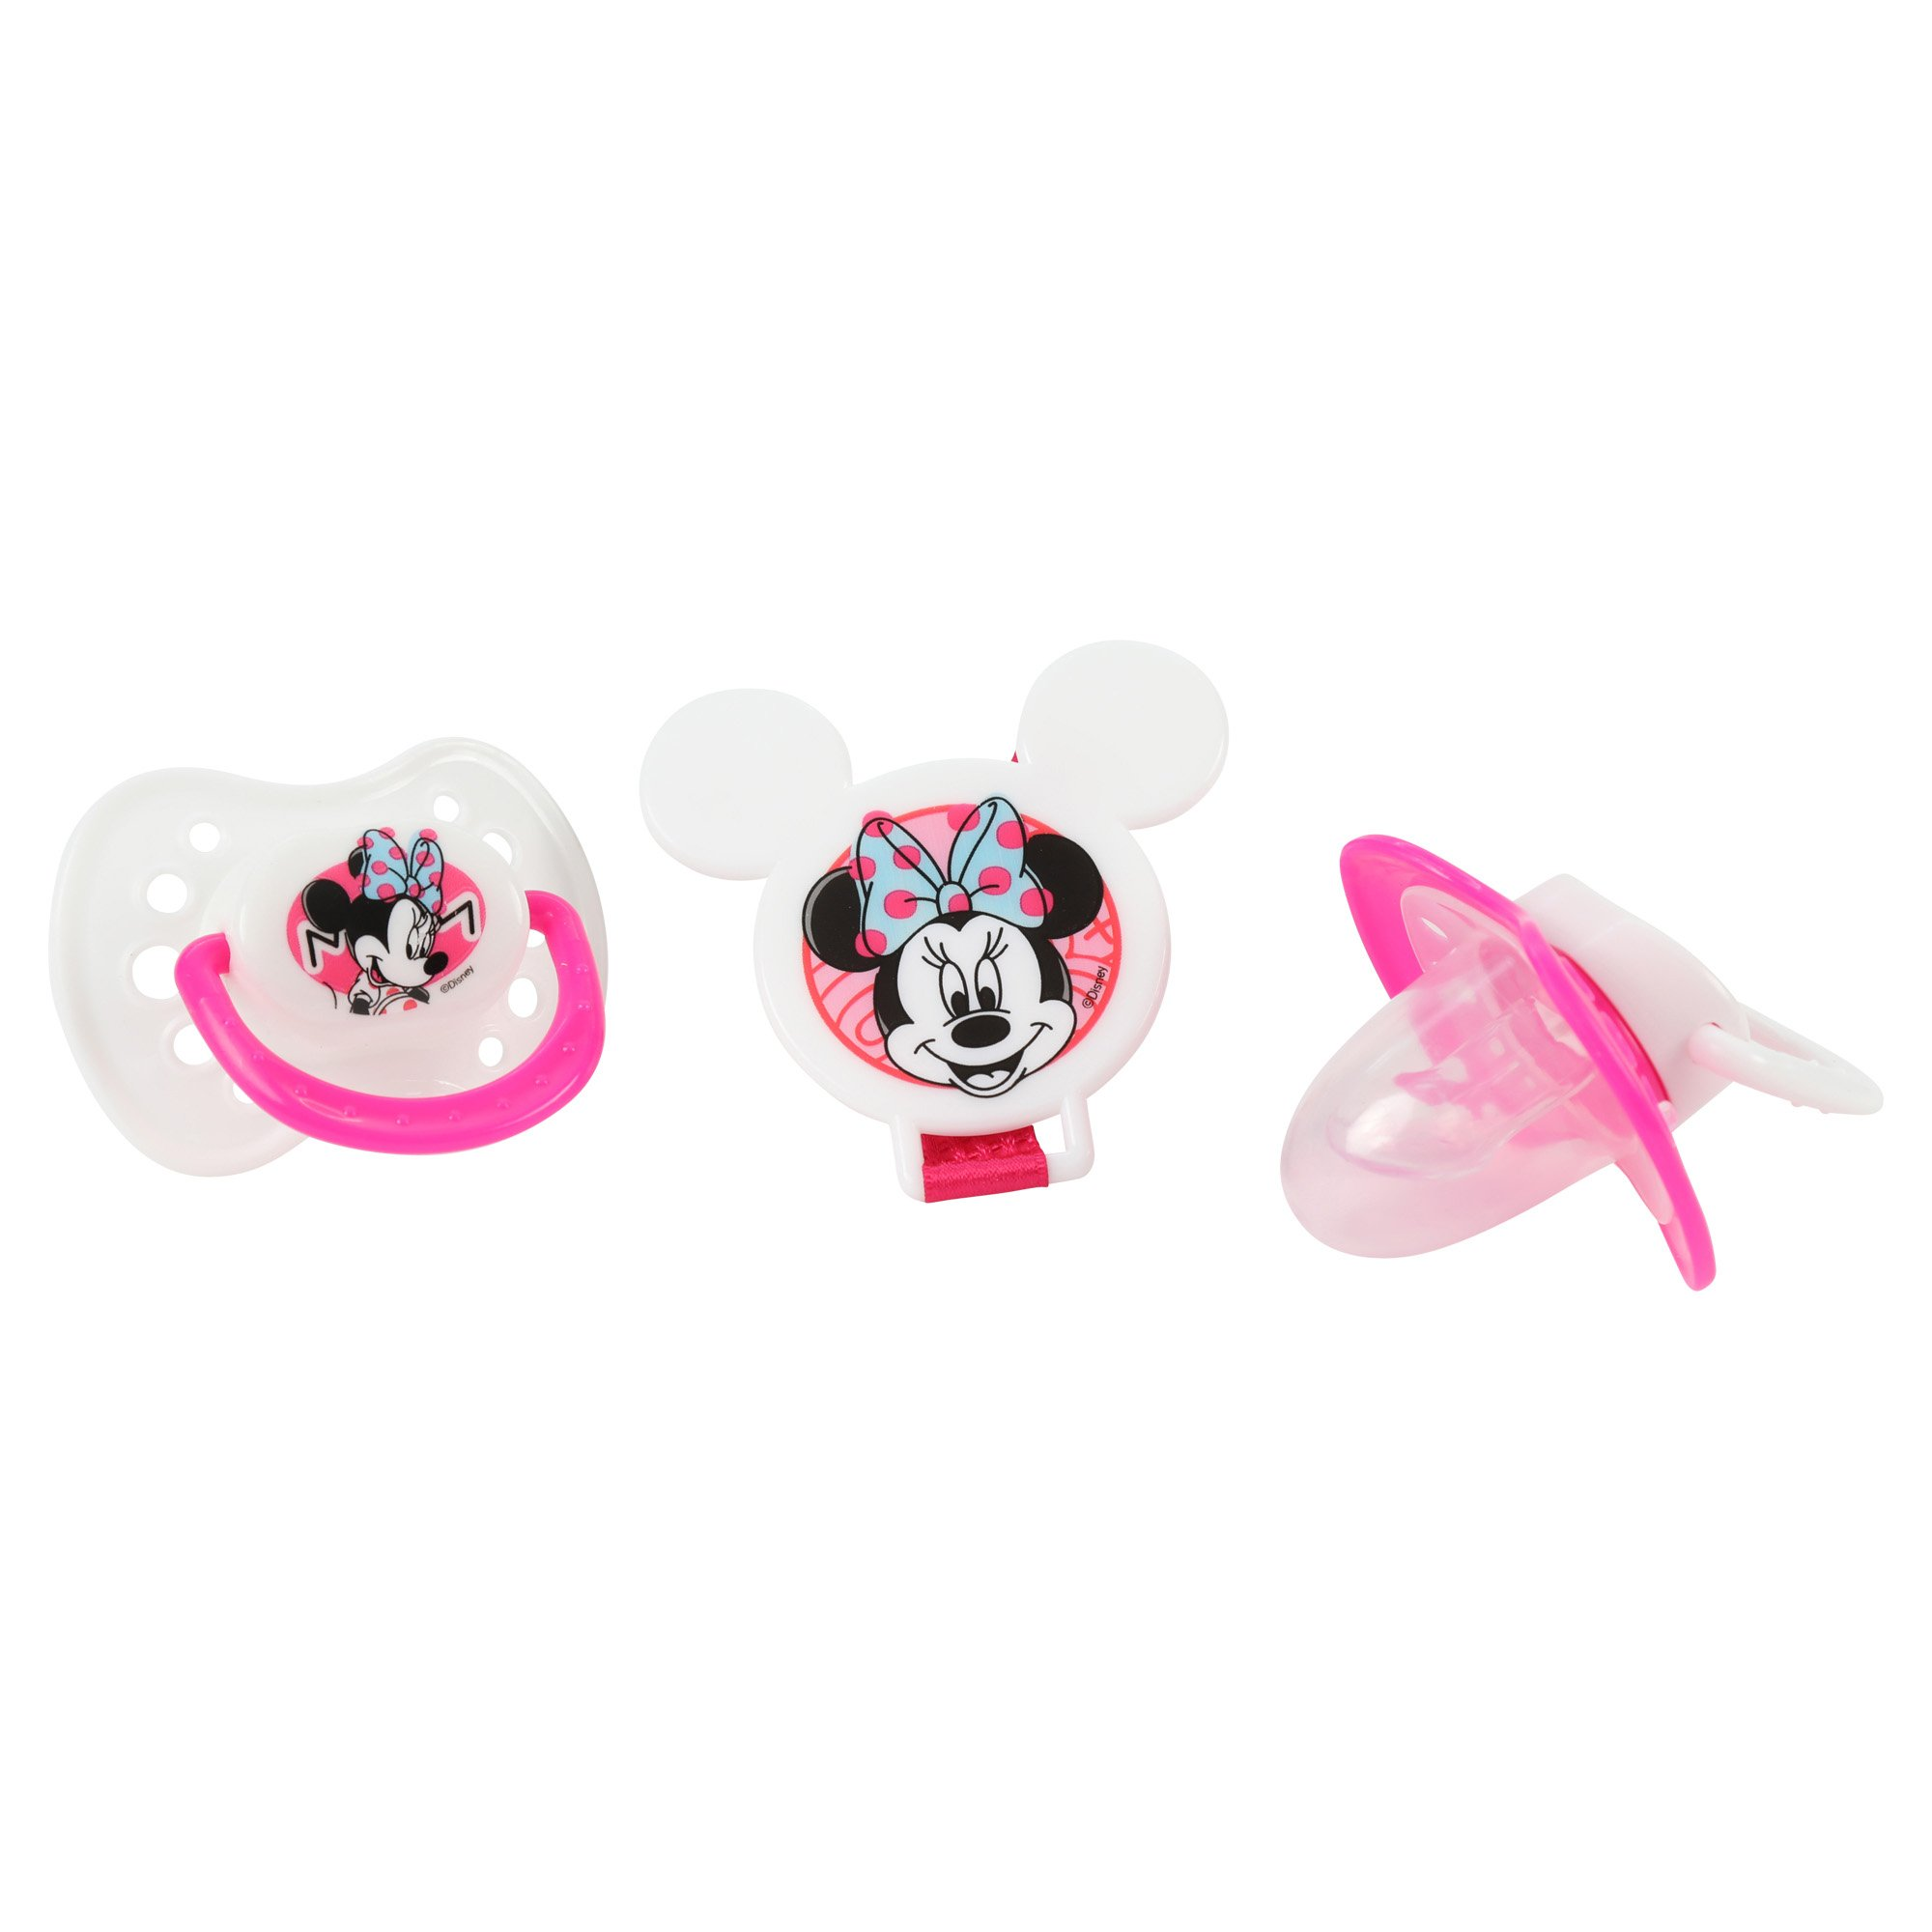 Pacifiers & Soothers Baby Nice Baby Boy Disney Mickey Mouse Orthodontic Pacifier With Cover Bpa Free Pink